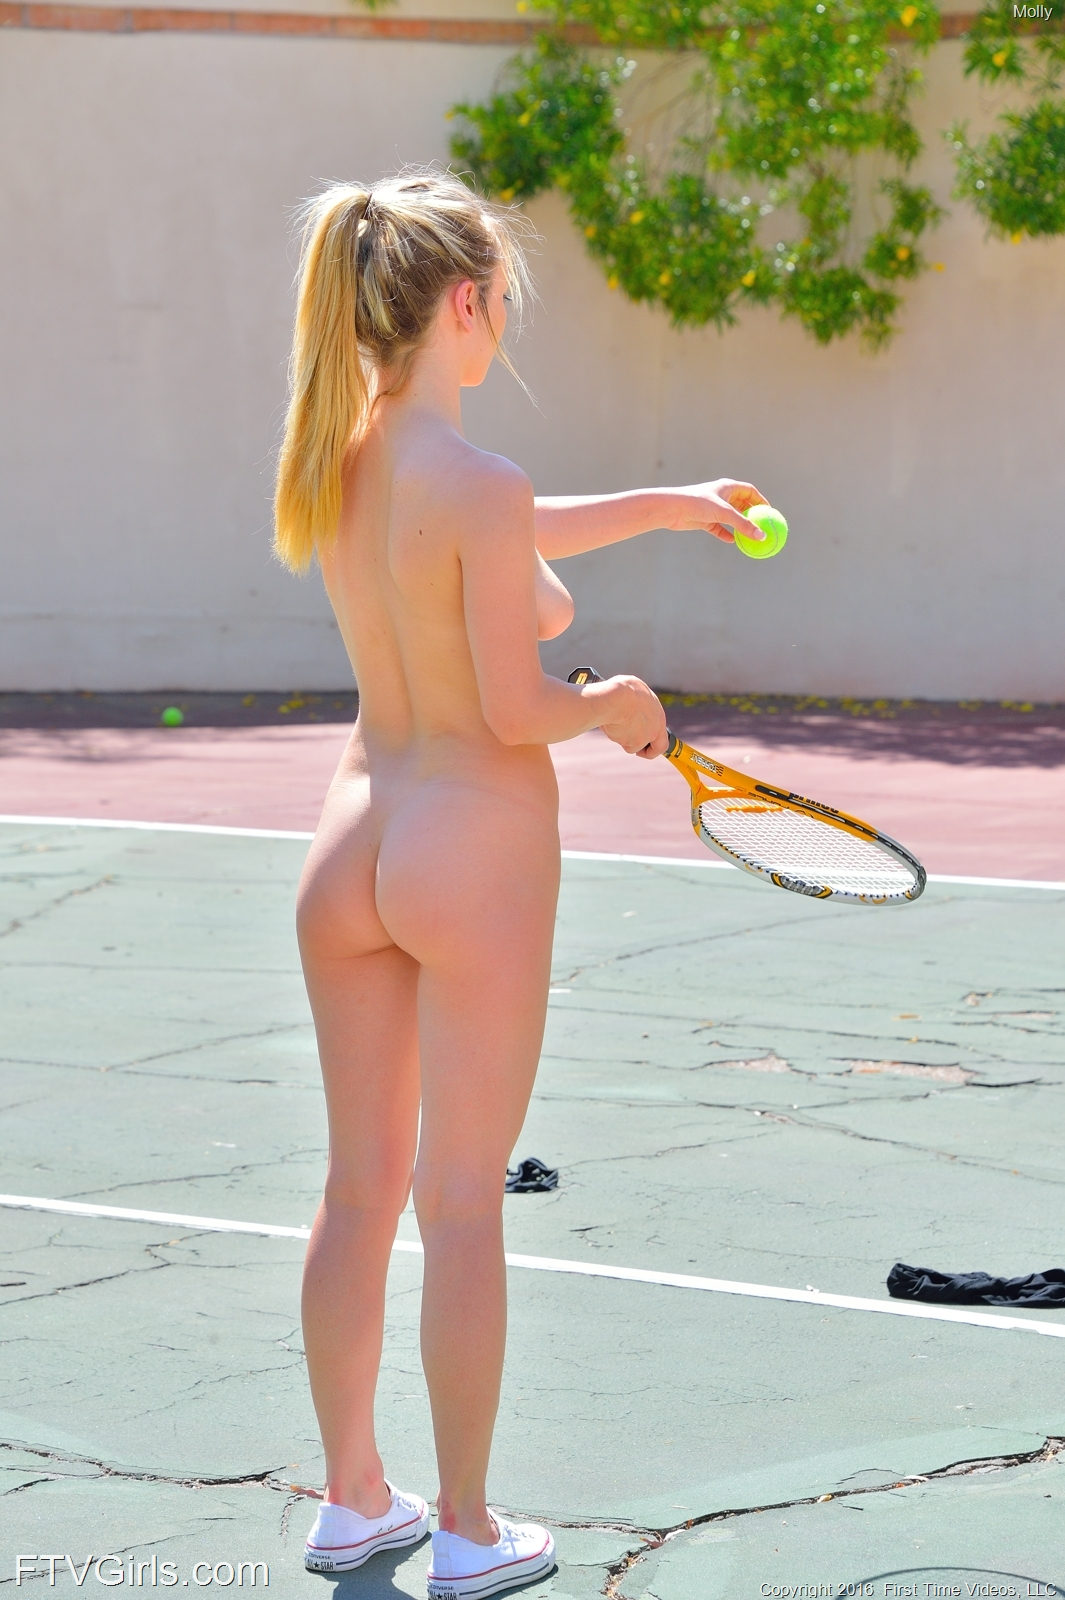 Molly Playing Some Tennis Naked - Sexy Gallery Full Photo -6869